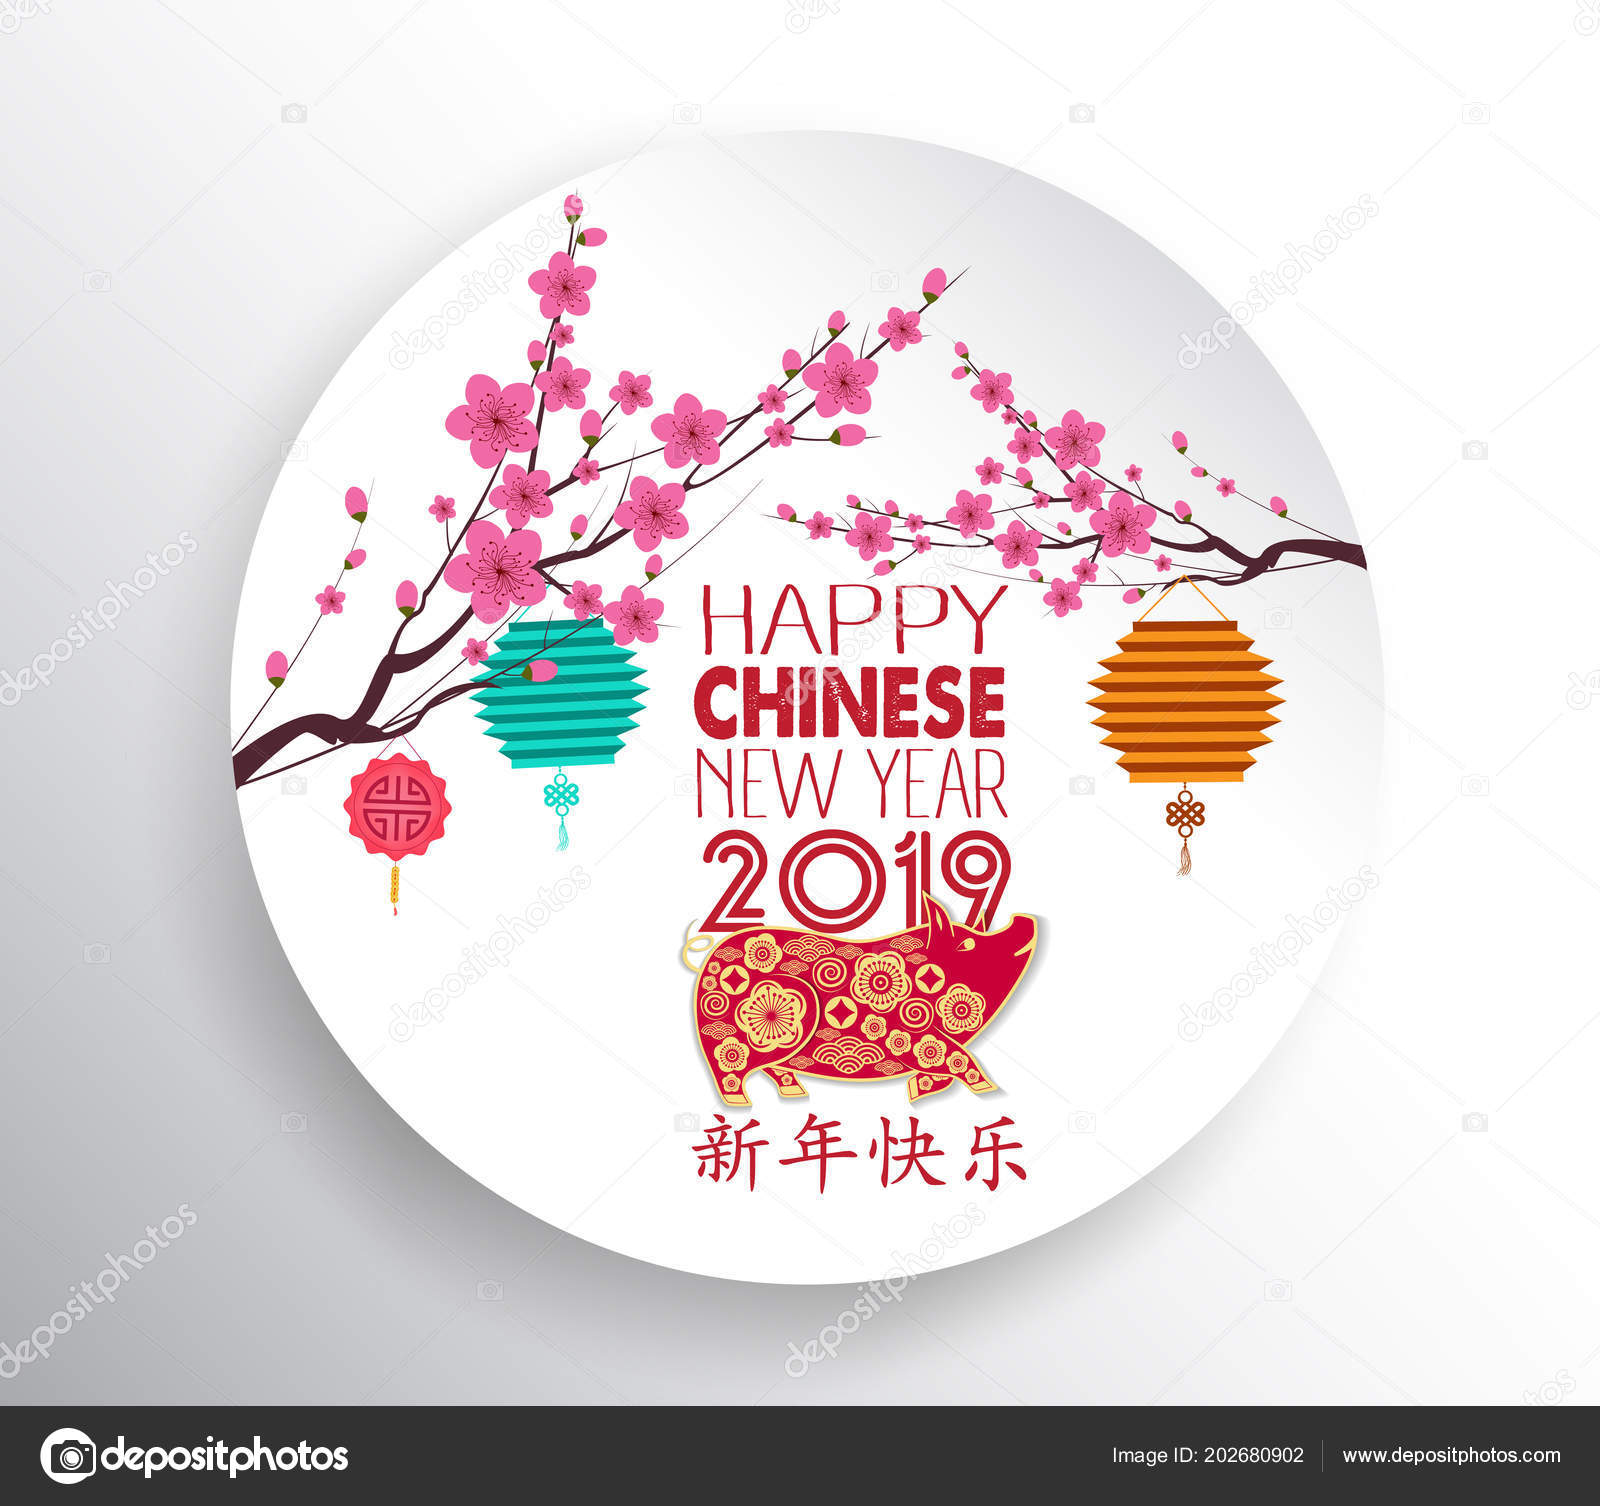 chinese characters mean happy new year wealthy zodiac sign for greetings card flyers invitation posters brochure banners calendar